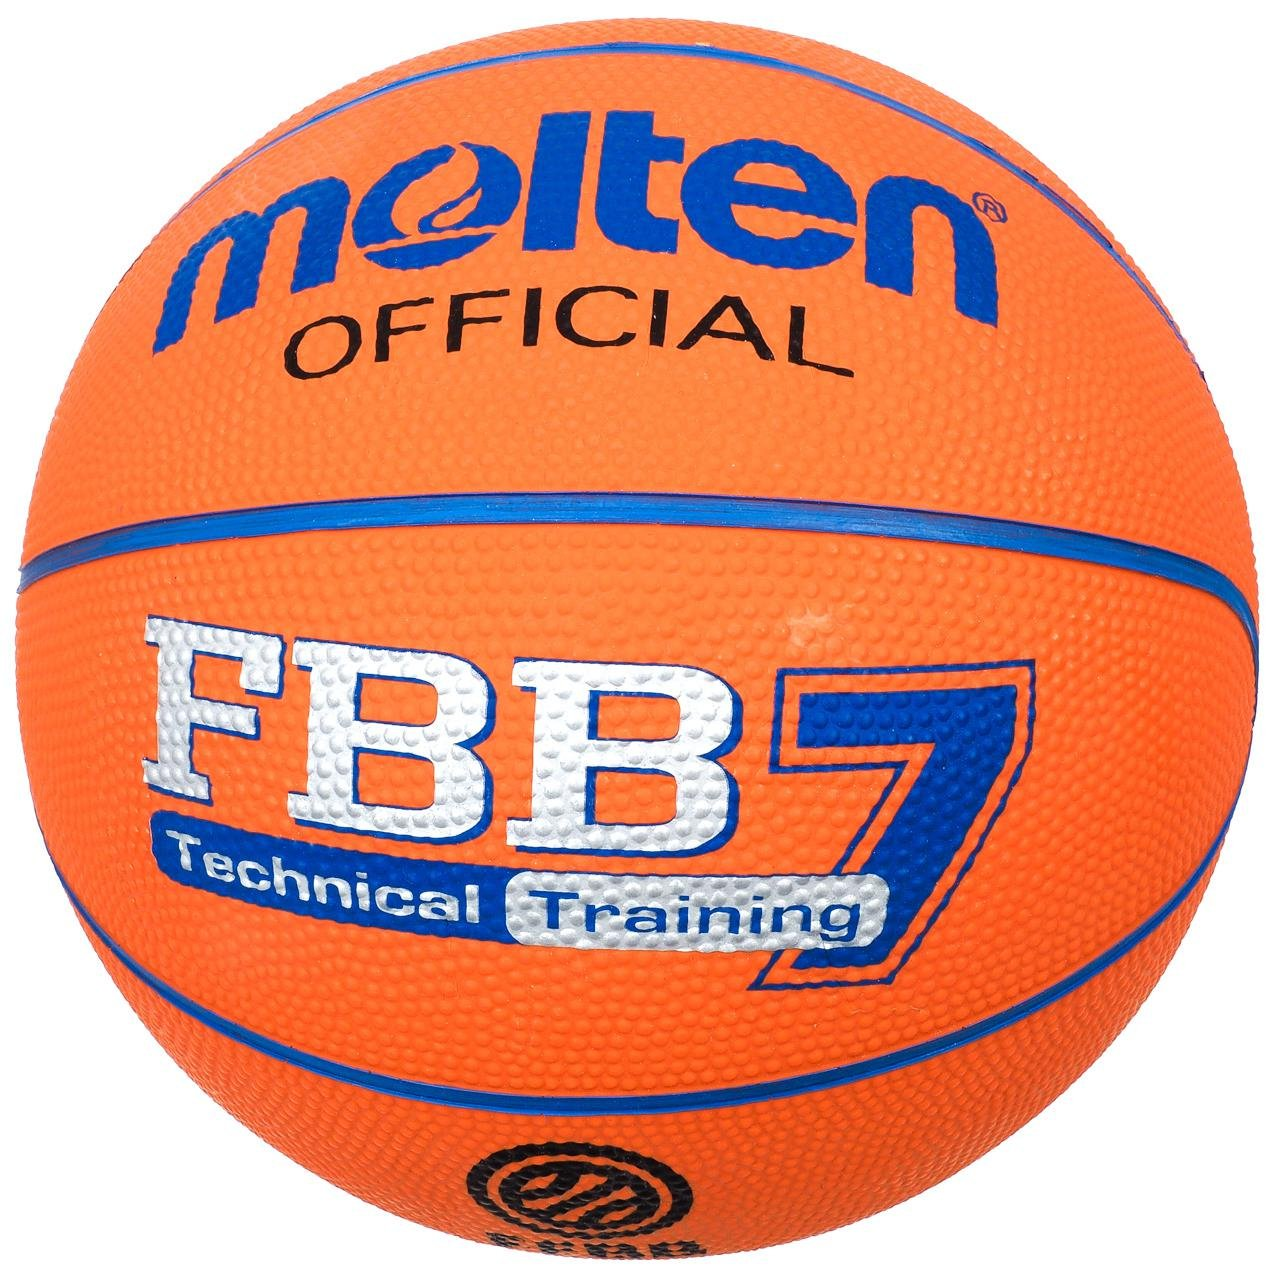 Molten - Fbb6 tech training - Ballon de basket